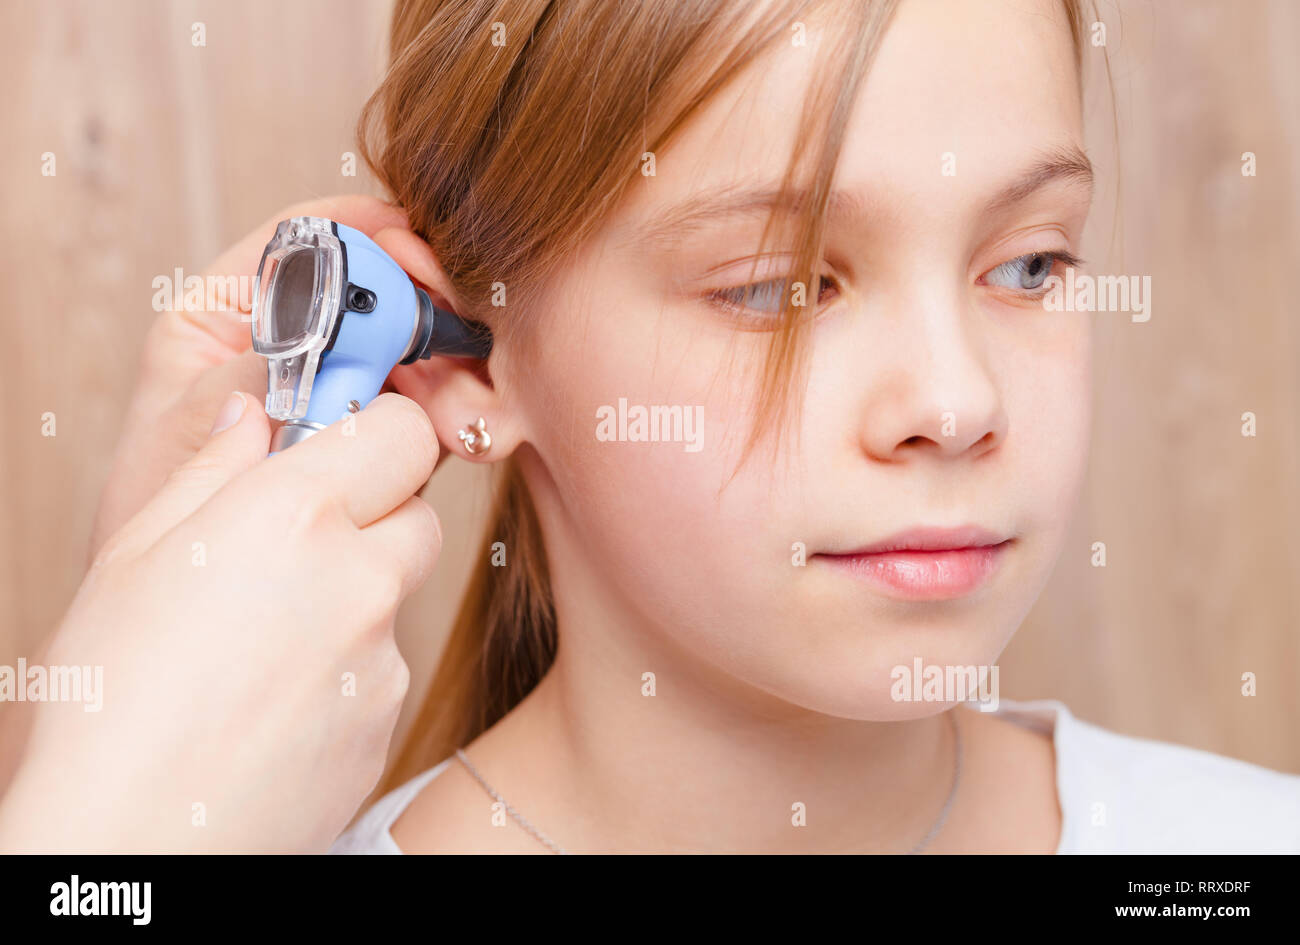 Female pediatrician examines elementary age girl's ear in pediatric clinic. Doctor using a otoscope or auriscope to check ear canal and eardrum membra Stock Photo